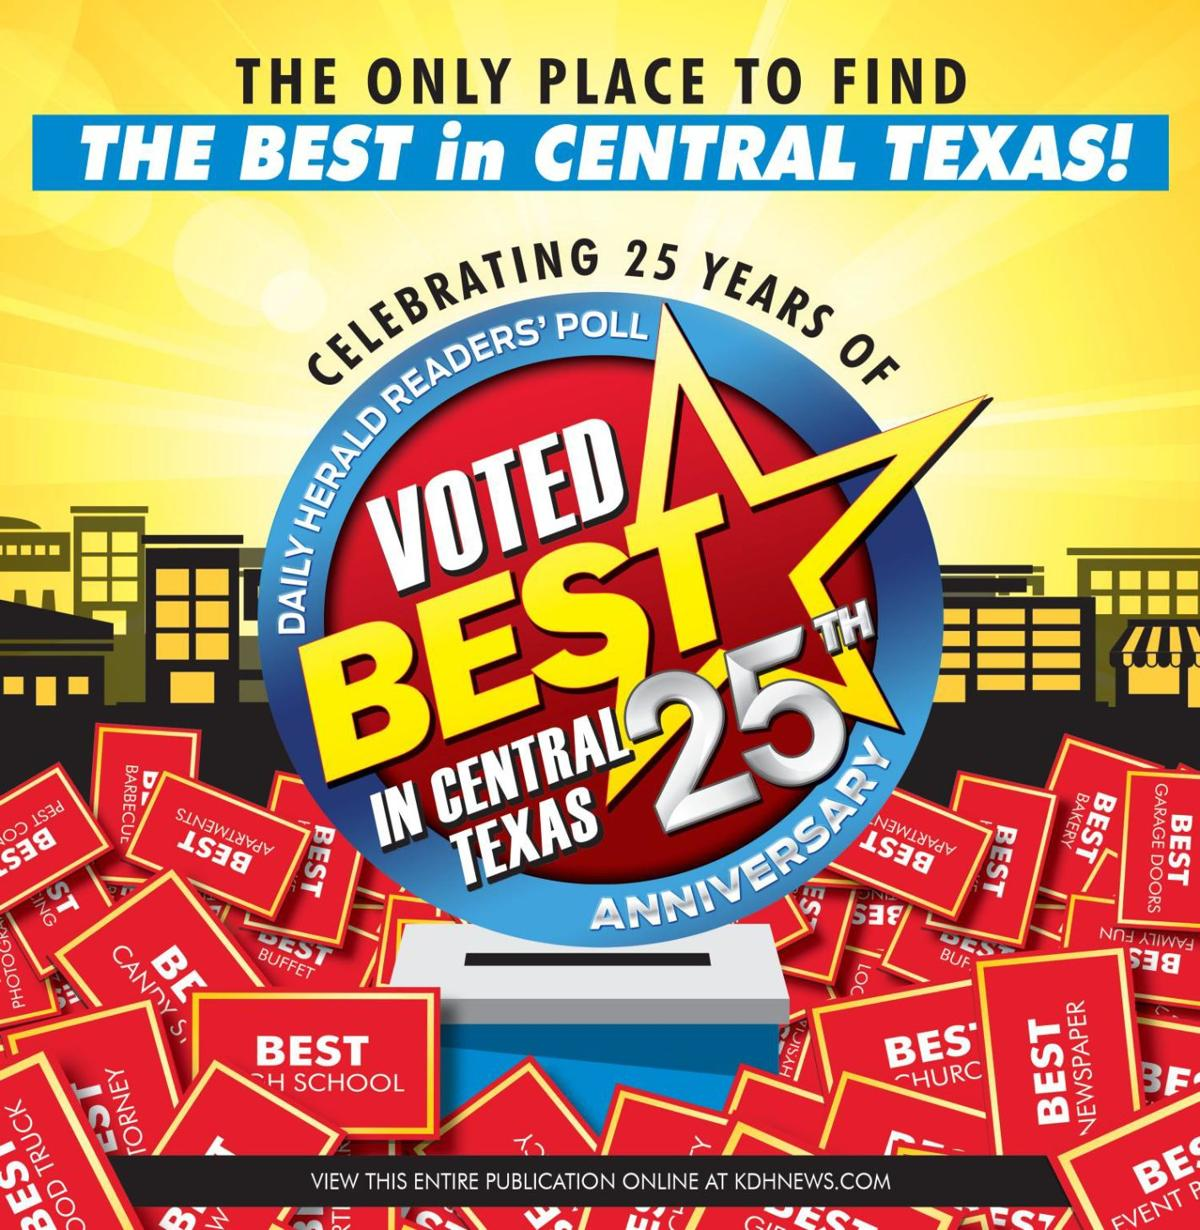 Best in Central Texas 25th Anniversary